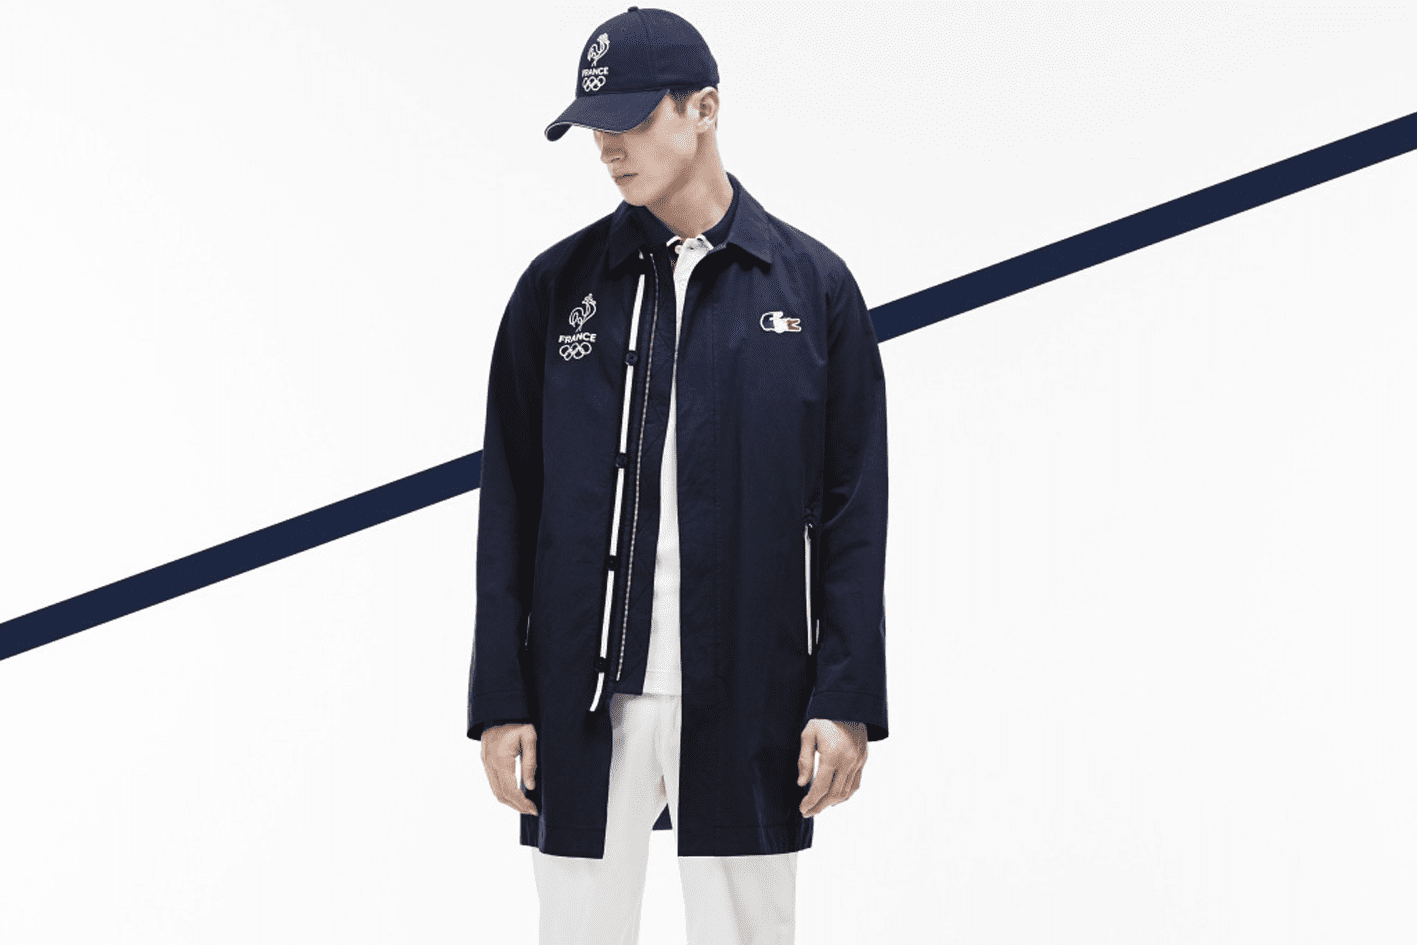 b669288743 Lacoste Jeux Olympiques Rio 2016 Antidote